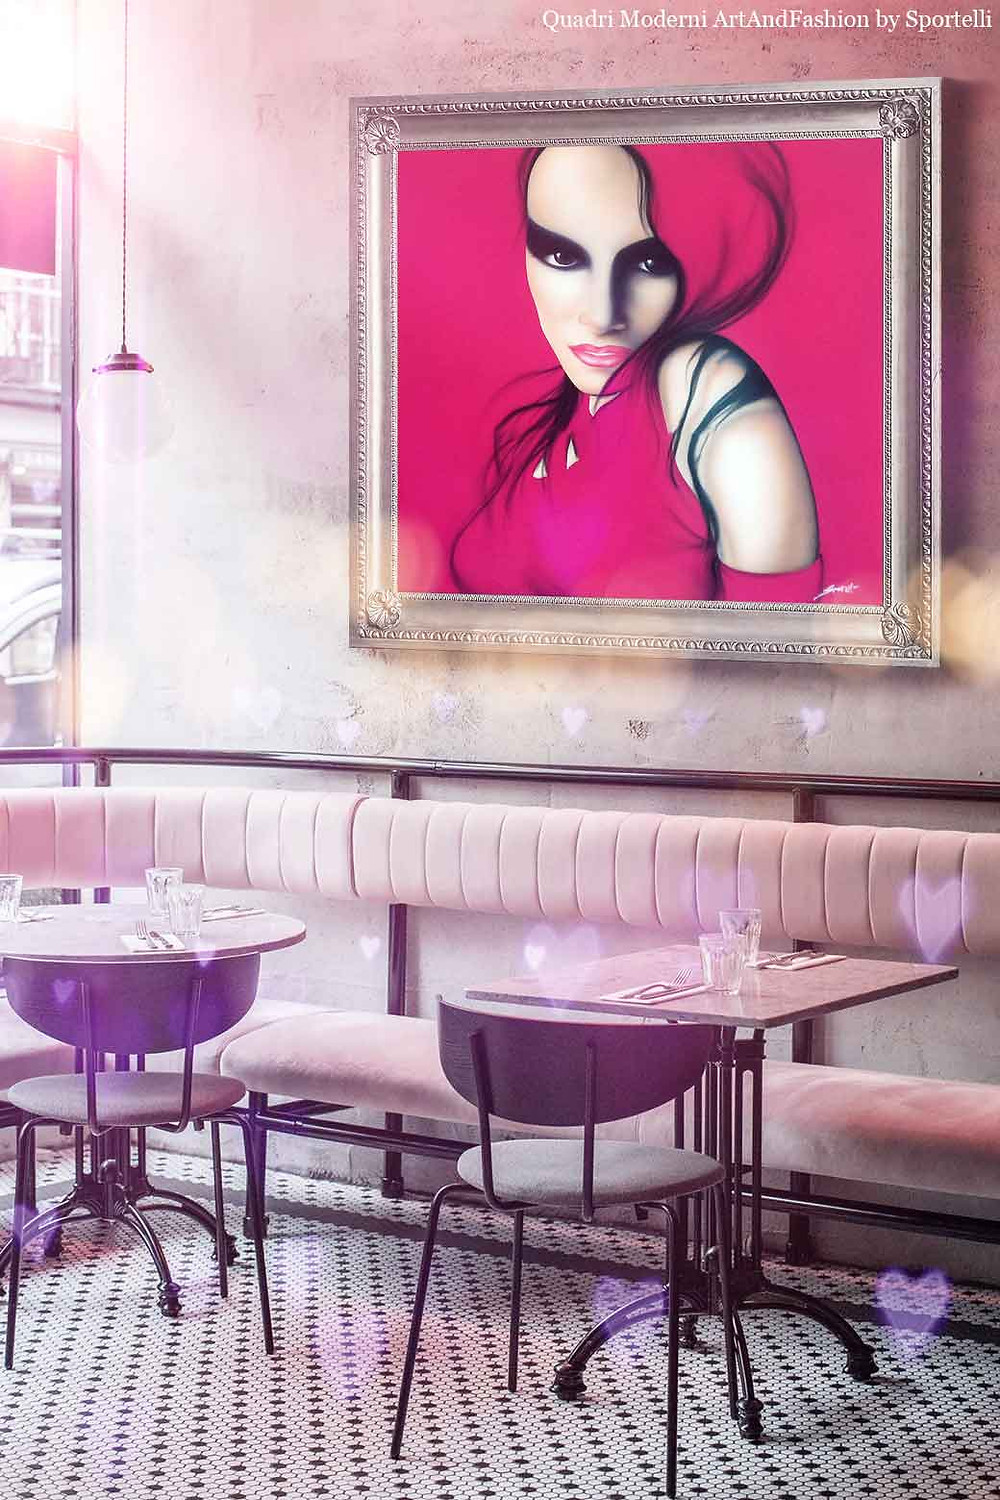 quadro-moderno-donna-fucsia-in-arredamento-locale-bar_ArtAndFashion-by-Sportelli